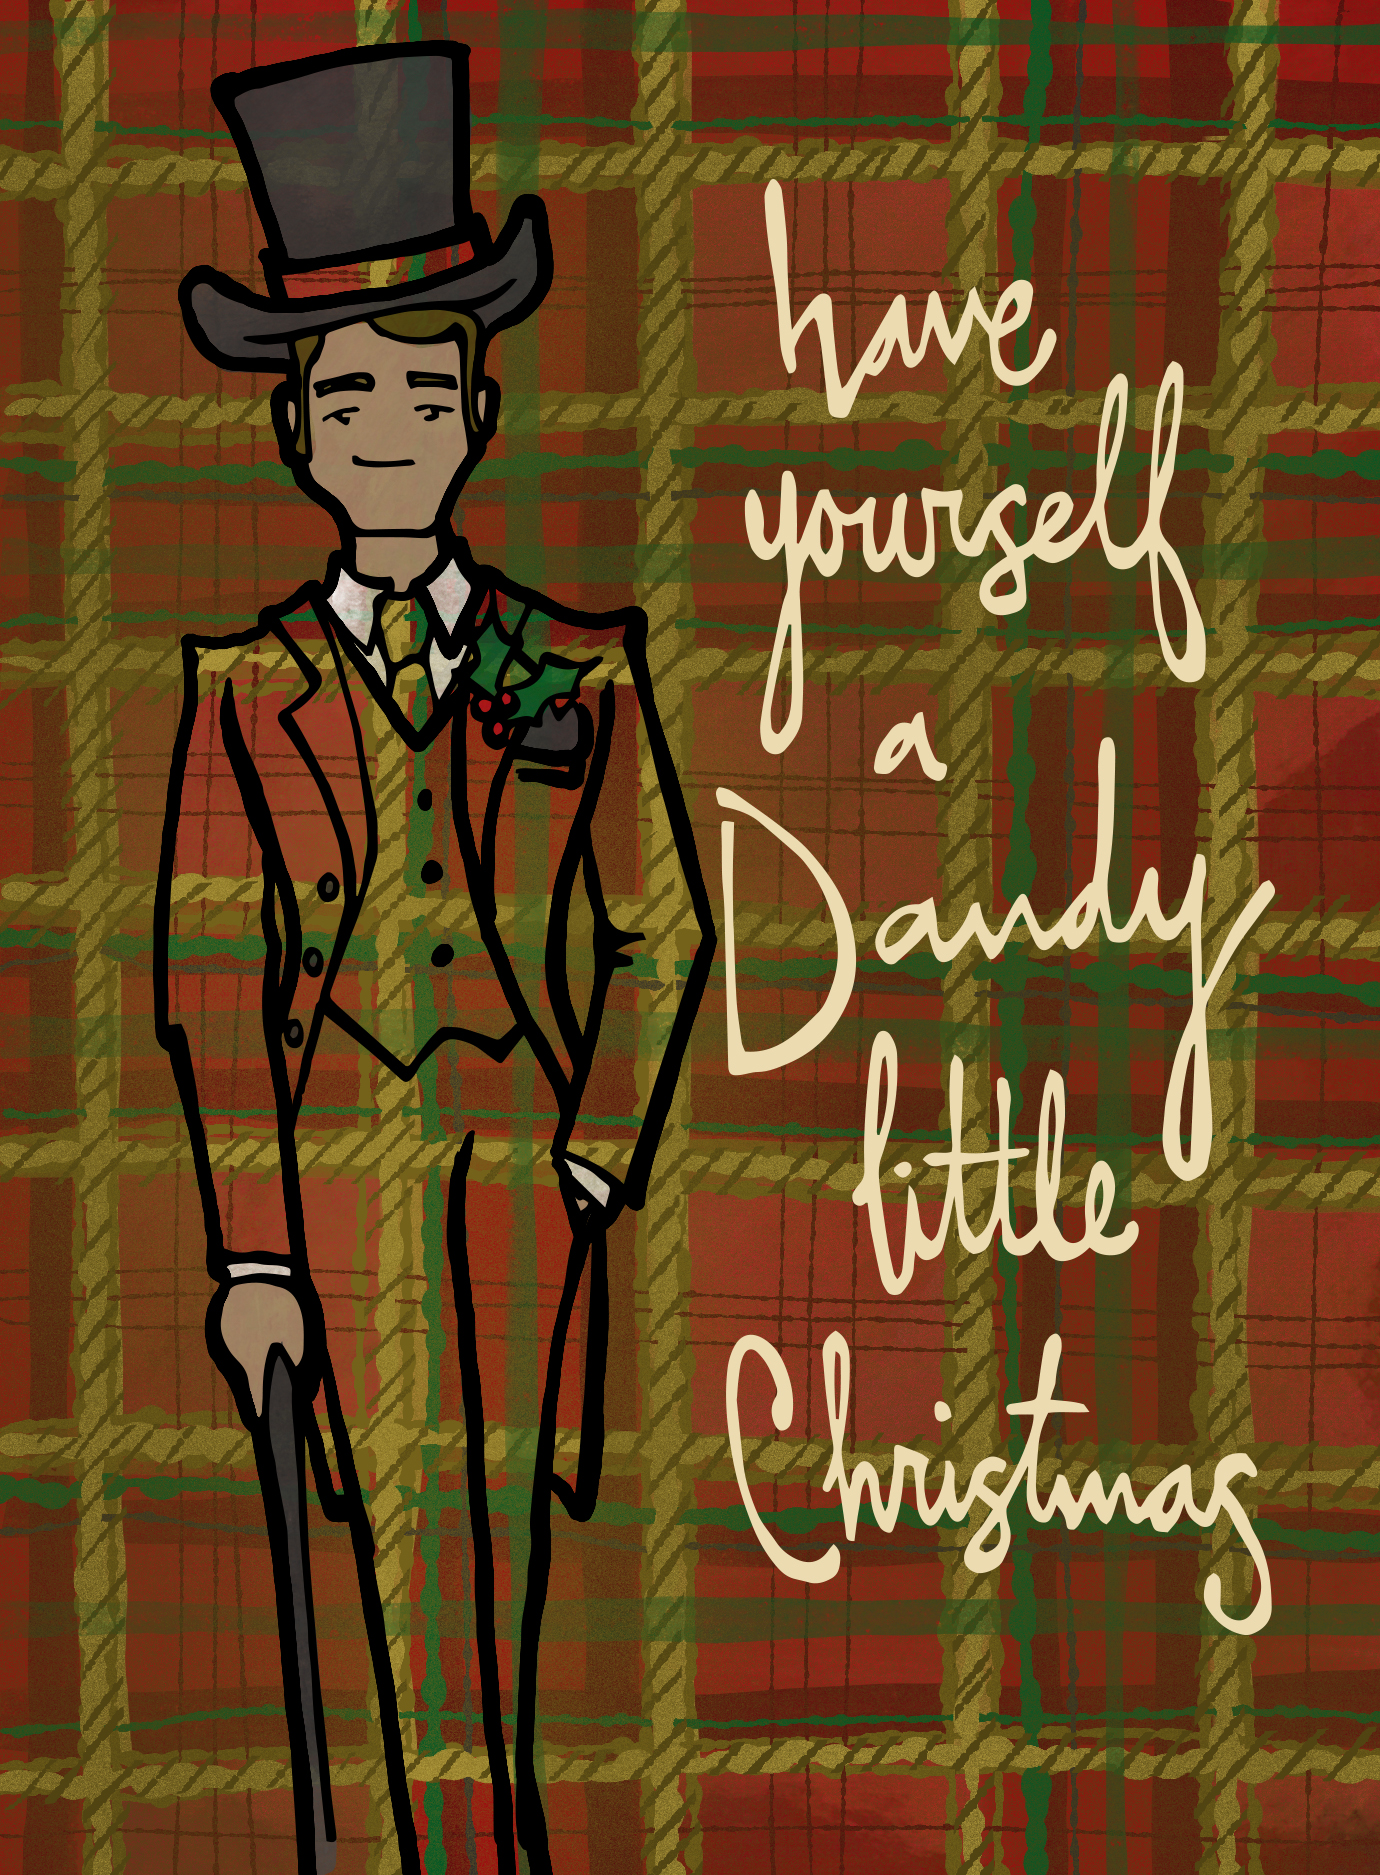 Dandy Christmas.jpg